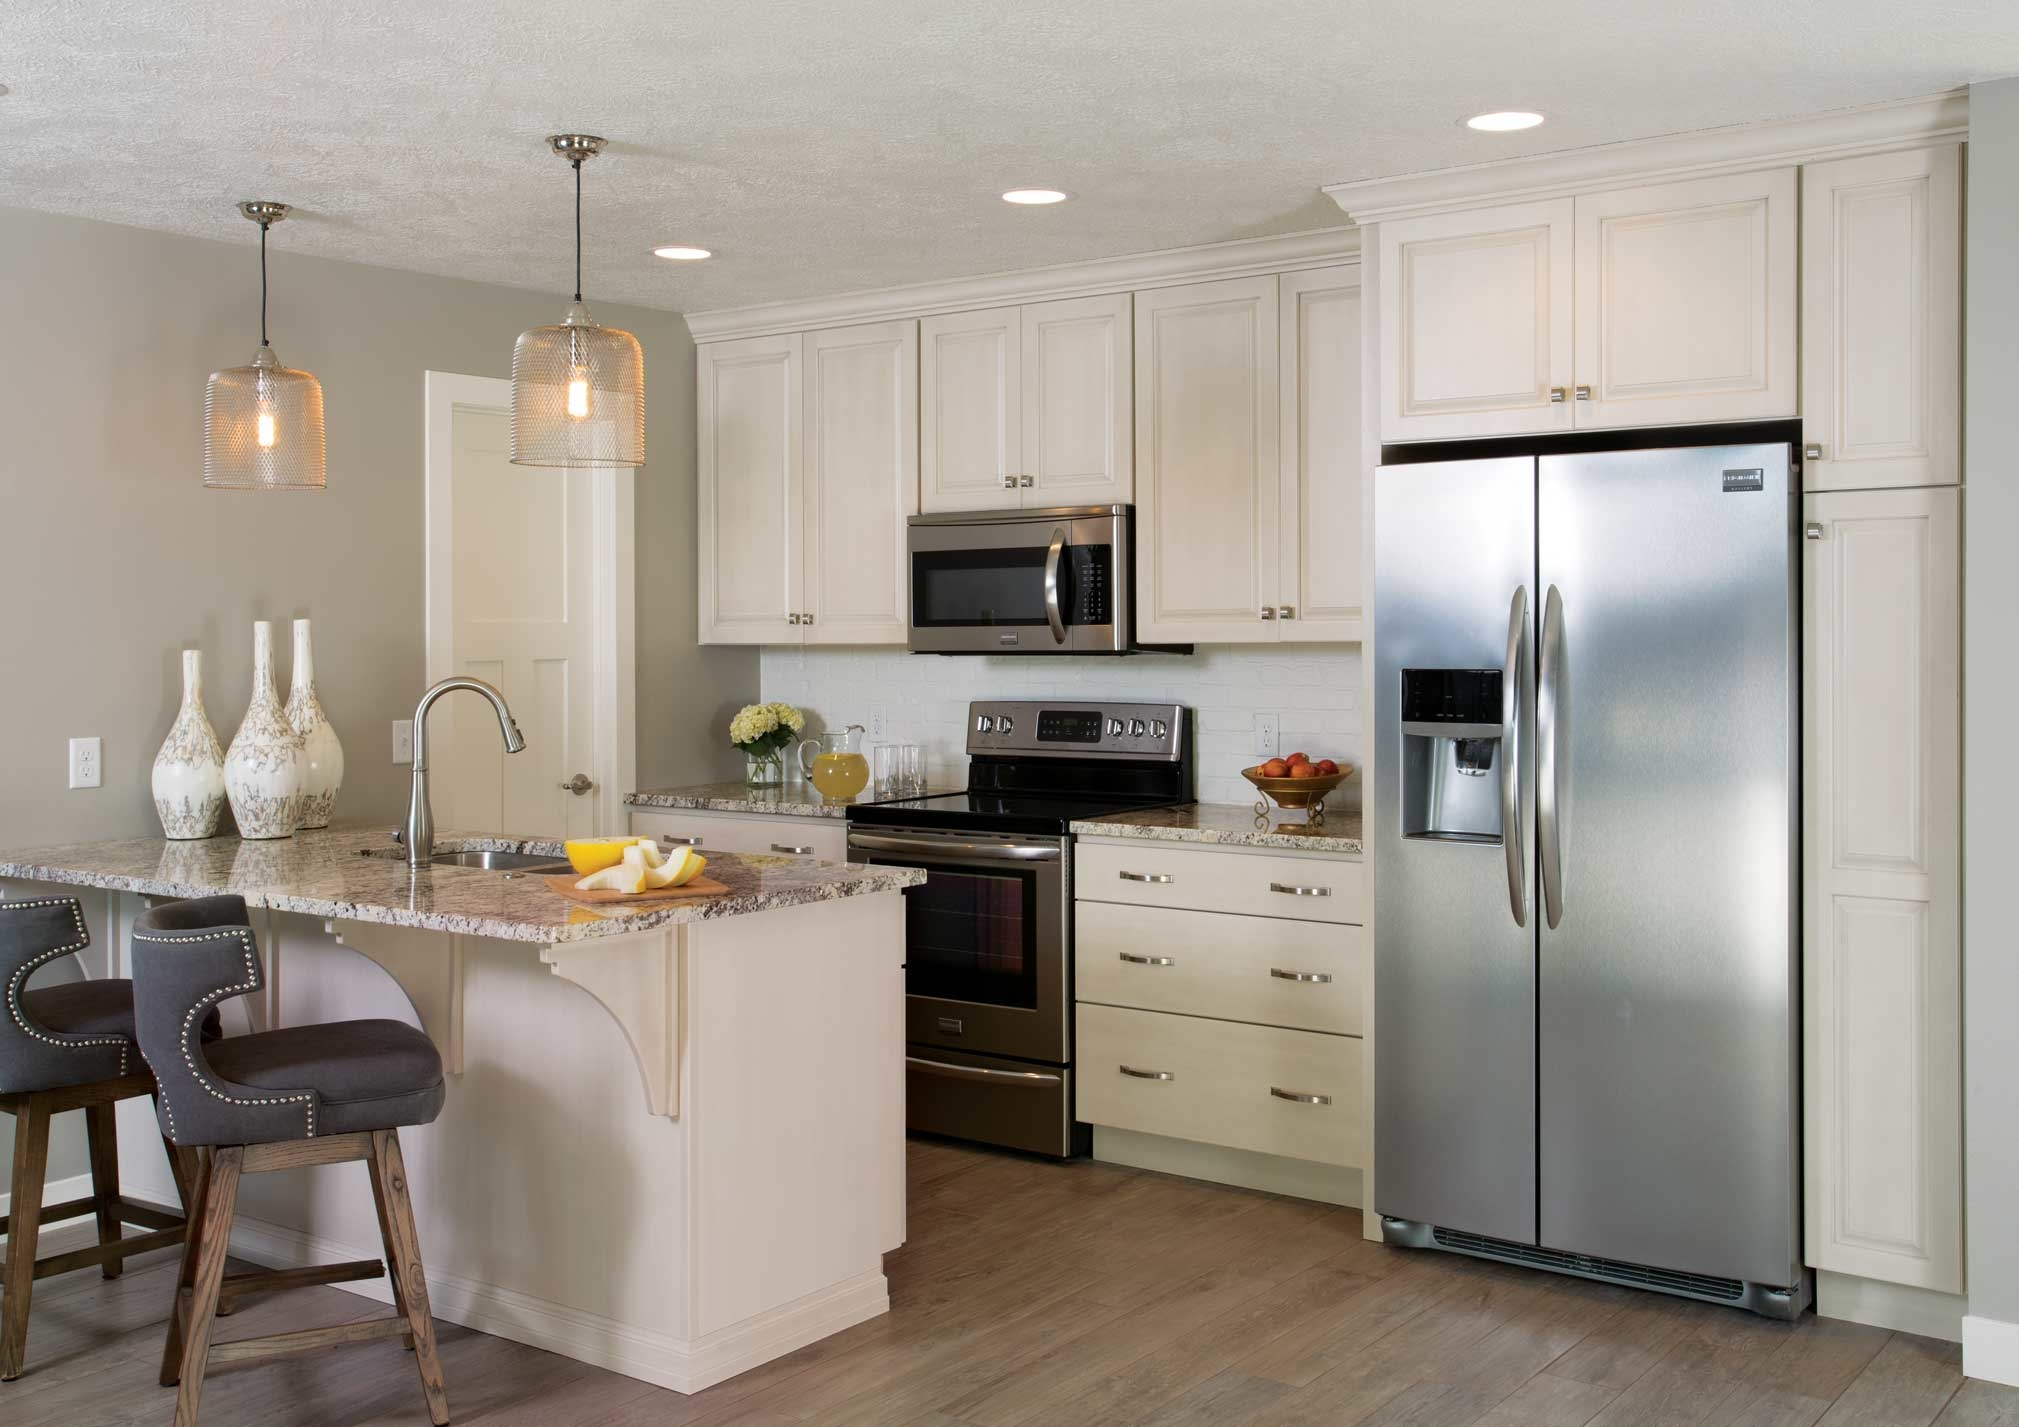 Kitchen And Bath Remodeling Sioux Falls